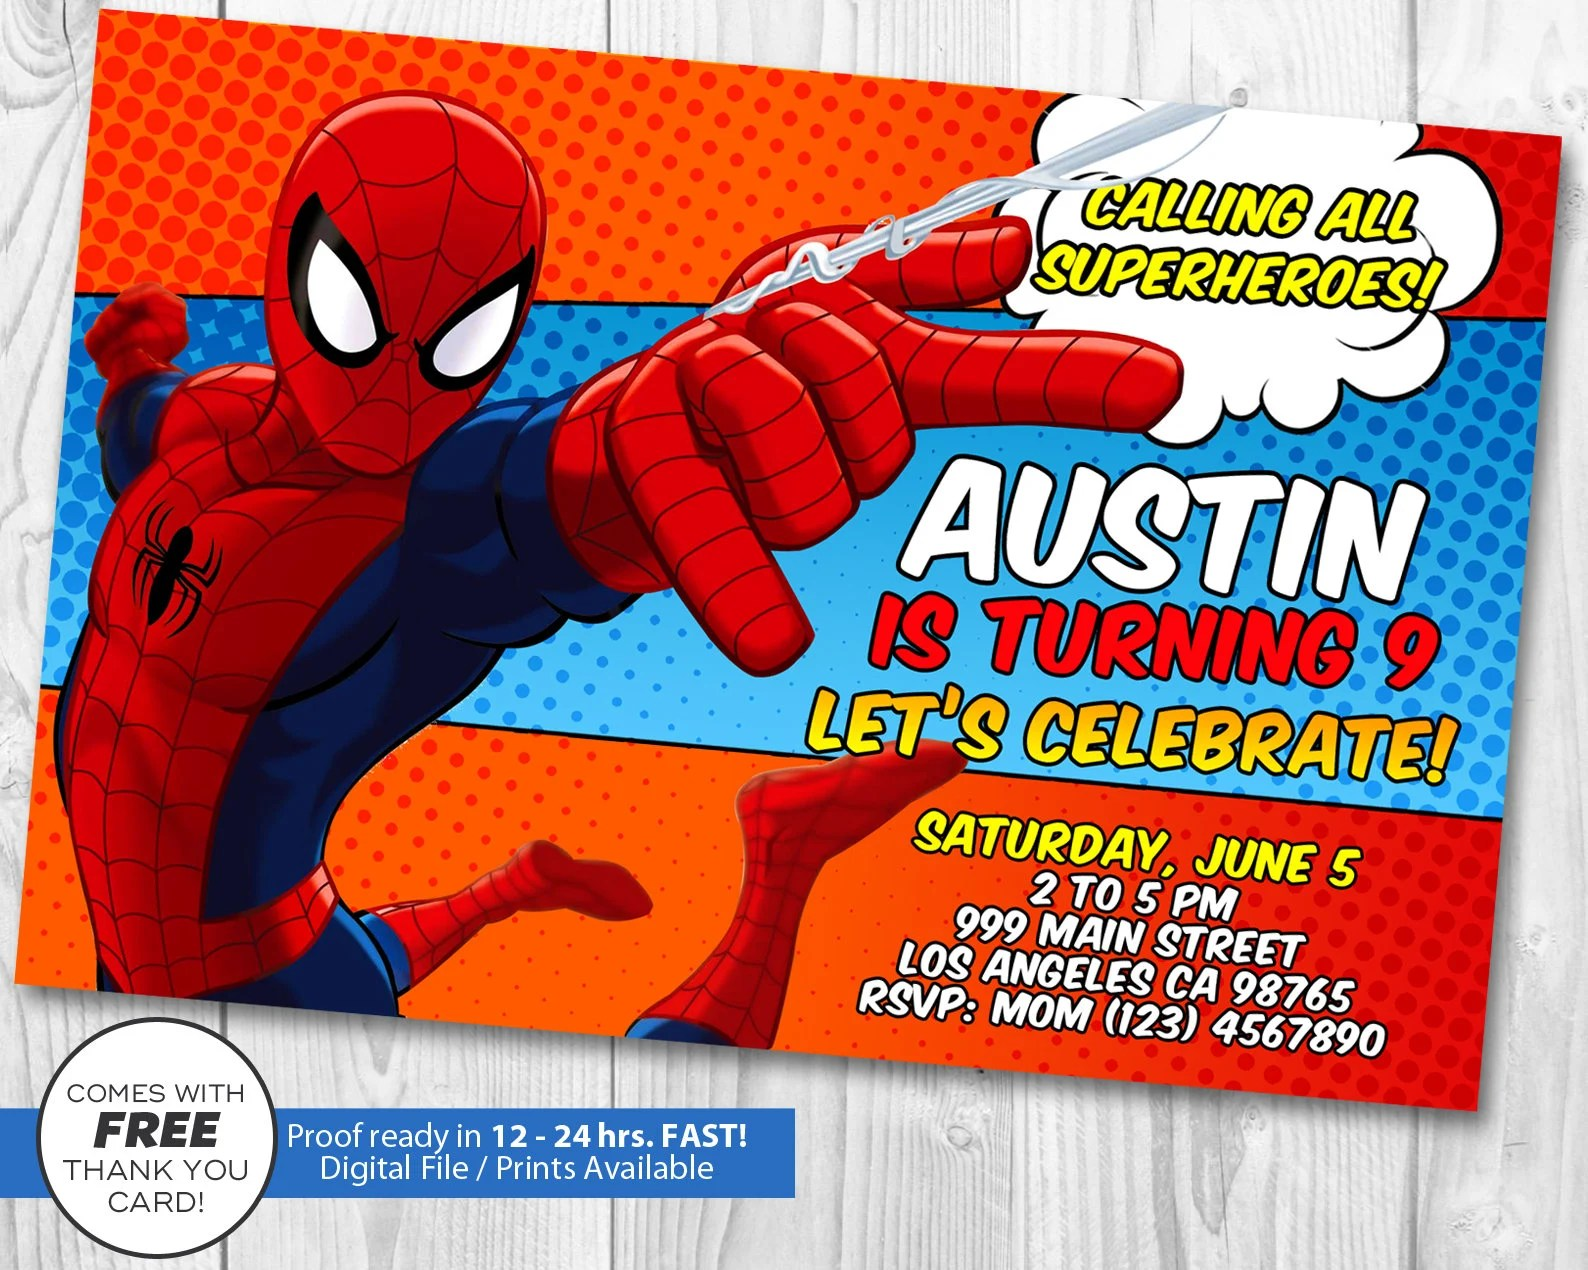 spiderman invitation spiderman birthday invitation spider man invitation spiderman invites free spider man thank you card